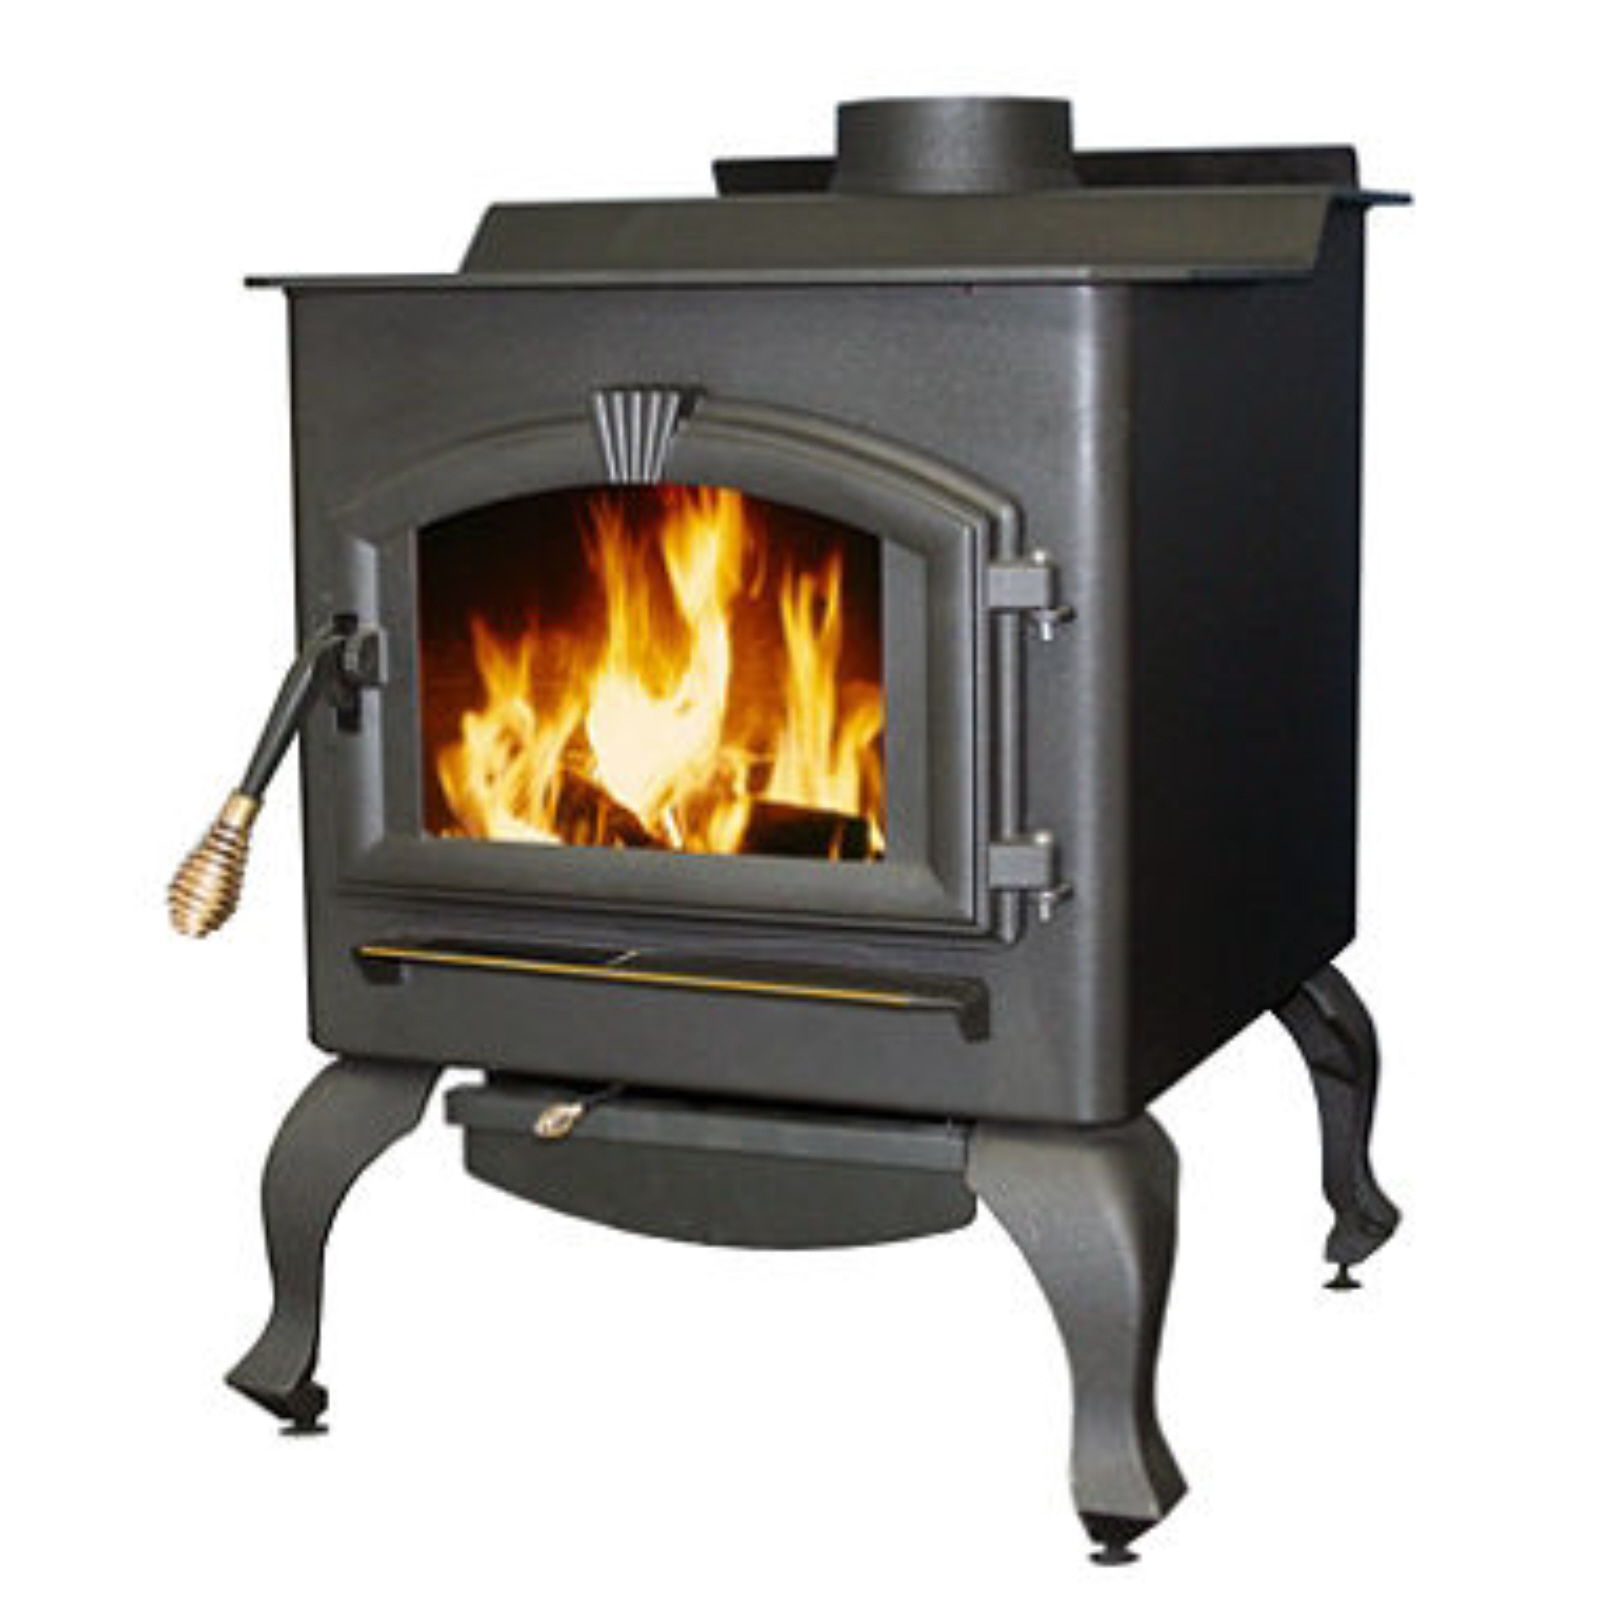 Large Stove With Blower 1a